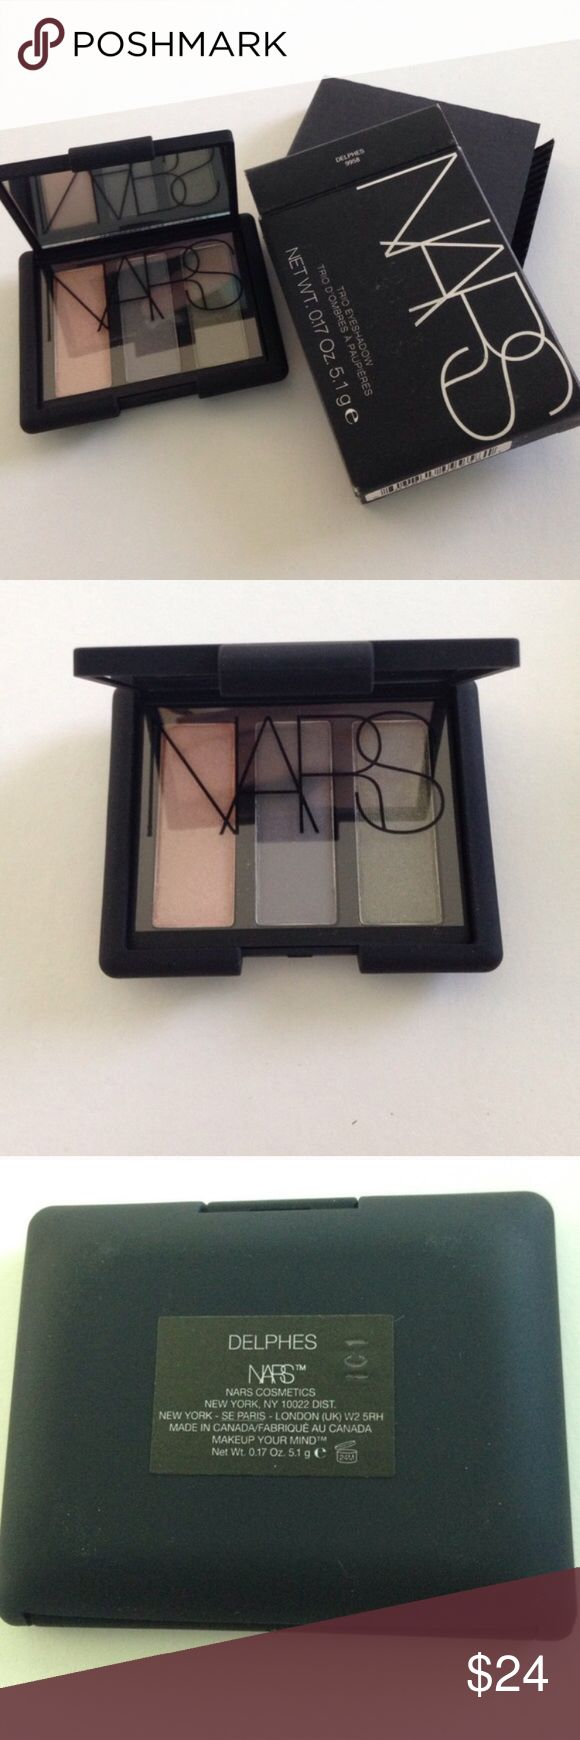 New Authentic NARS Eyeshadow Duo Delphes Brand New Authentic NARS Eyeshadow Duo Delphes in original packaging. Never swatched. No trades. NARS Makeup Eyeshadow